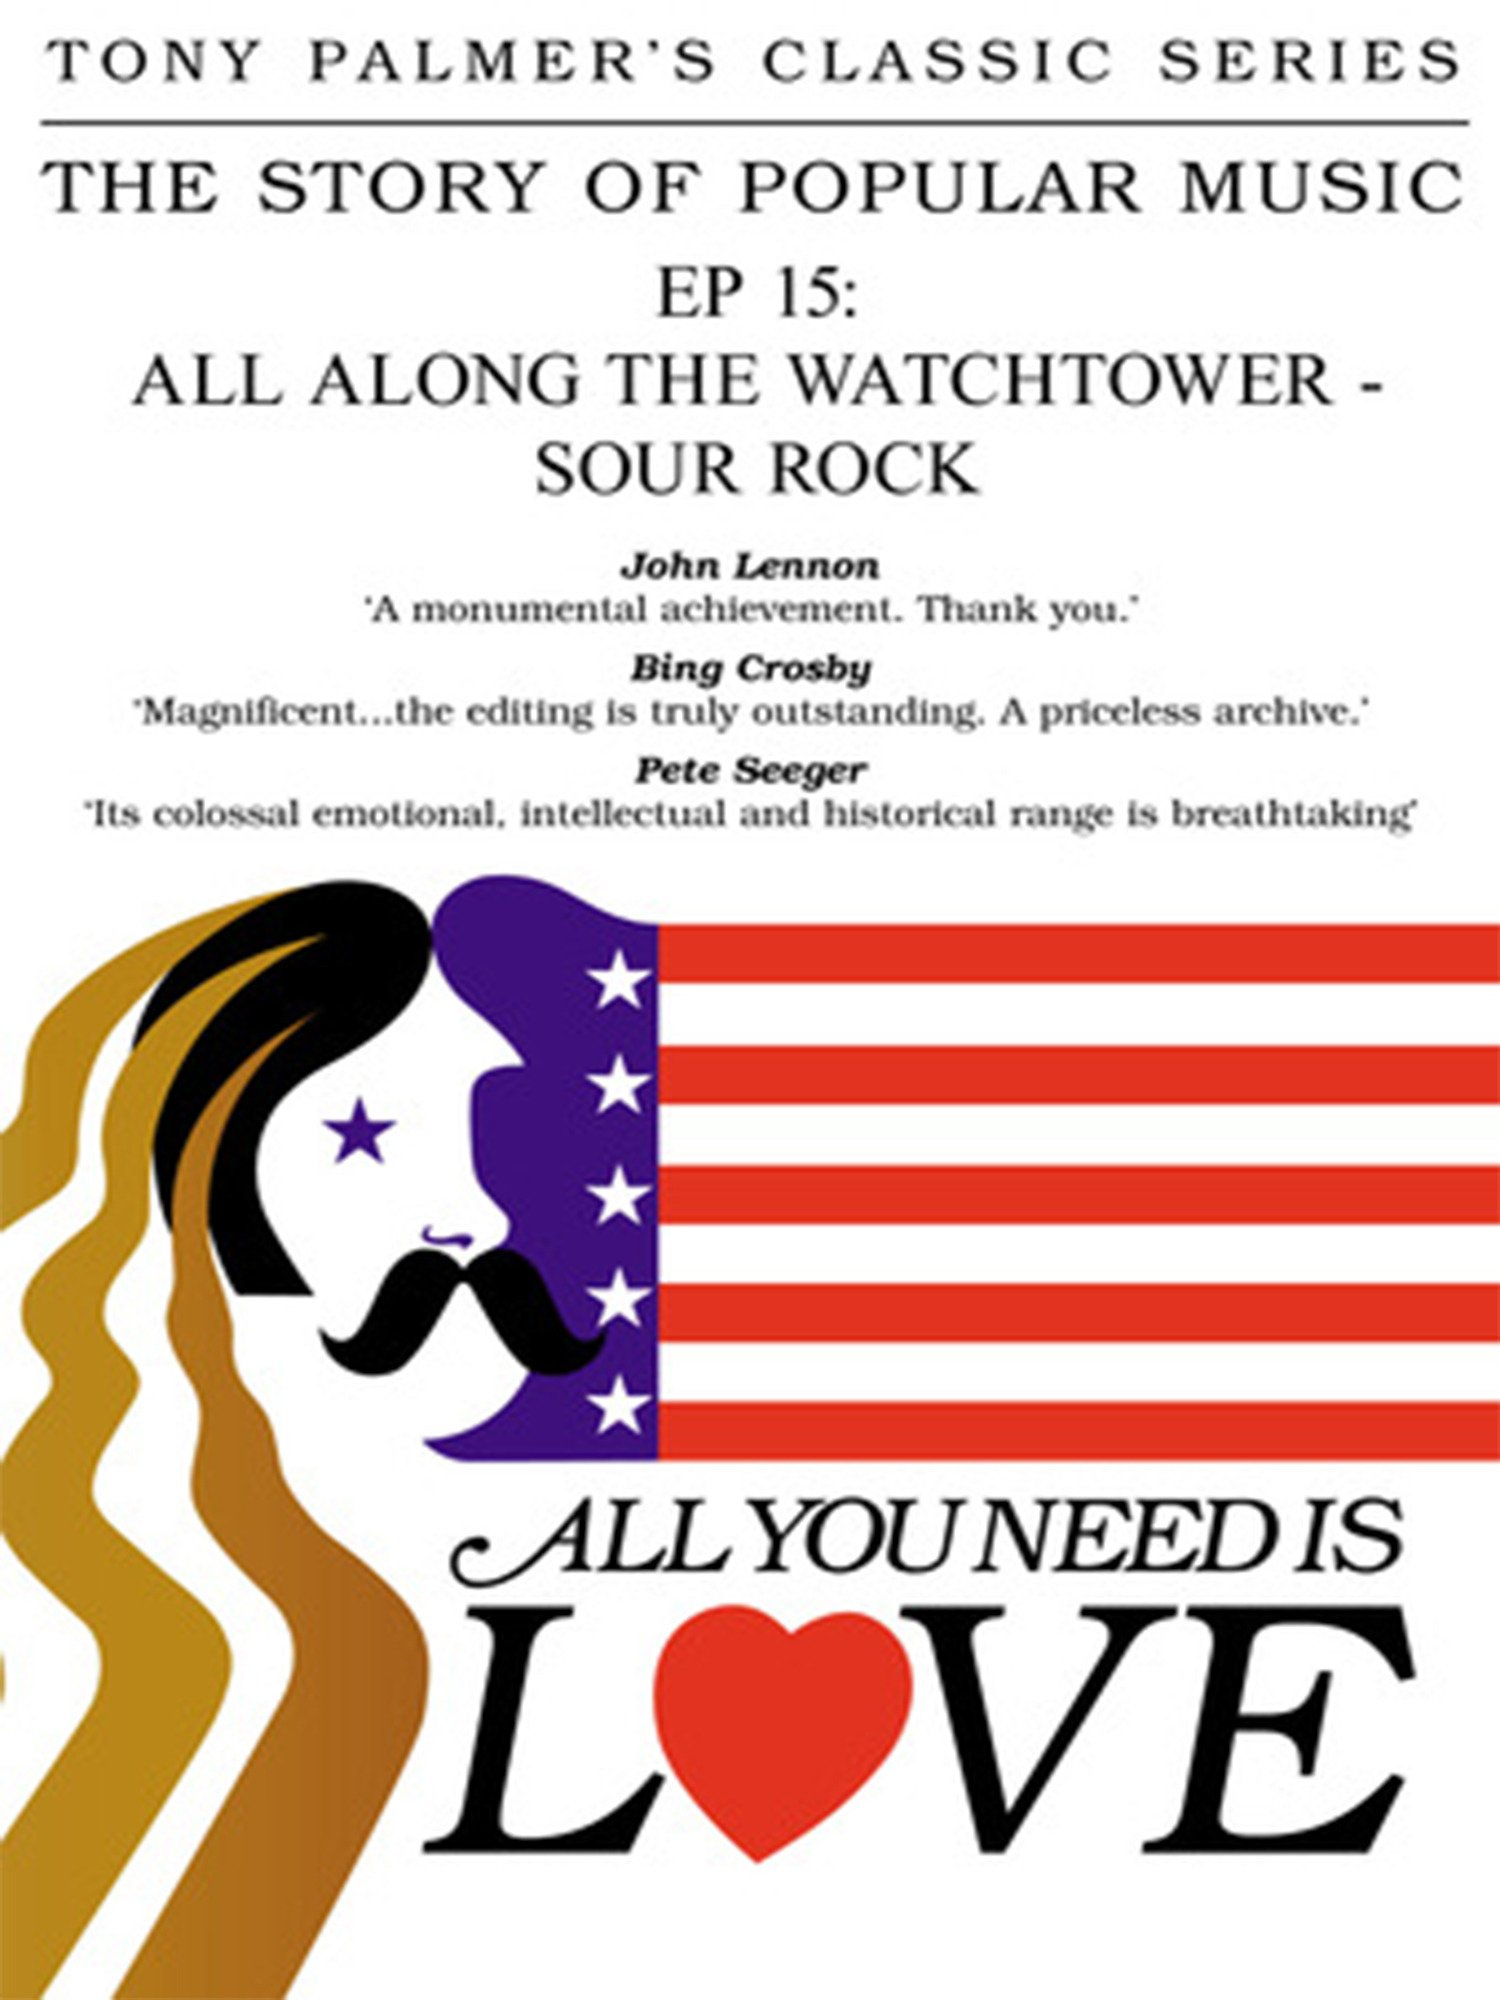 Caratula de All you need is love: All along the Watchtower (All you need is love: All along the Watchtower)